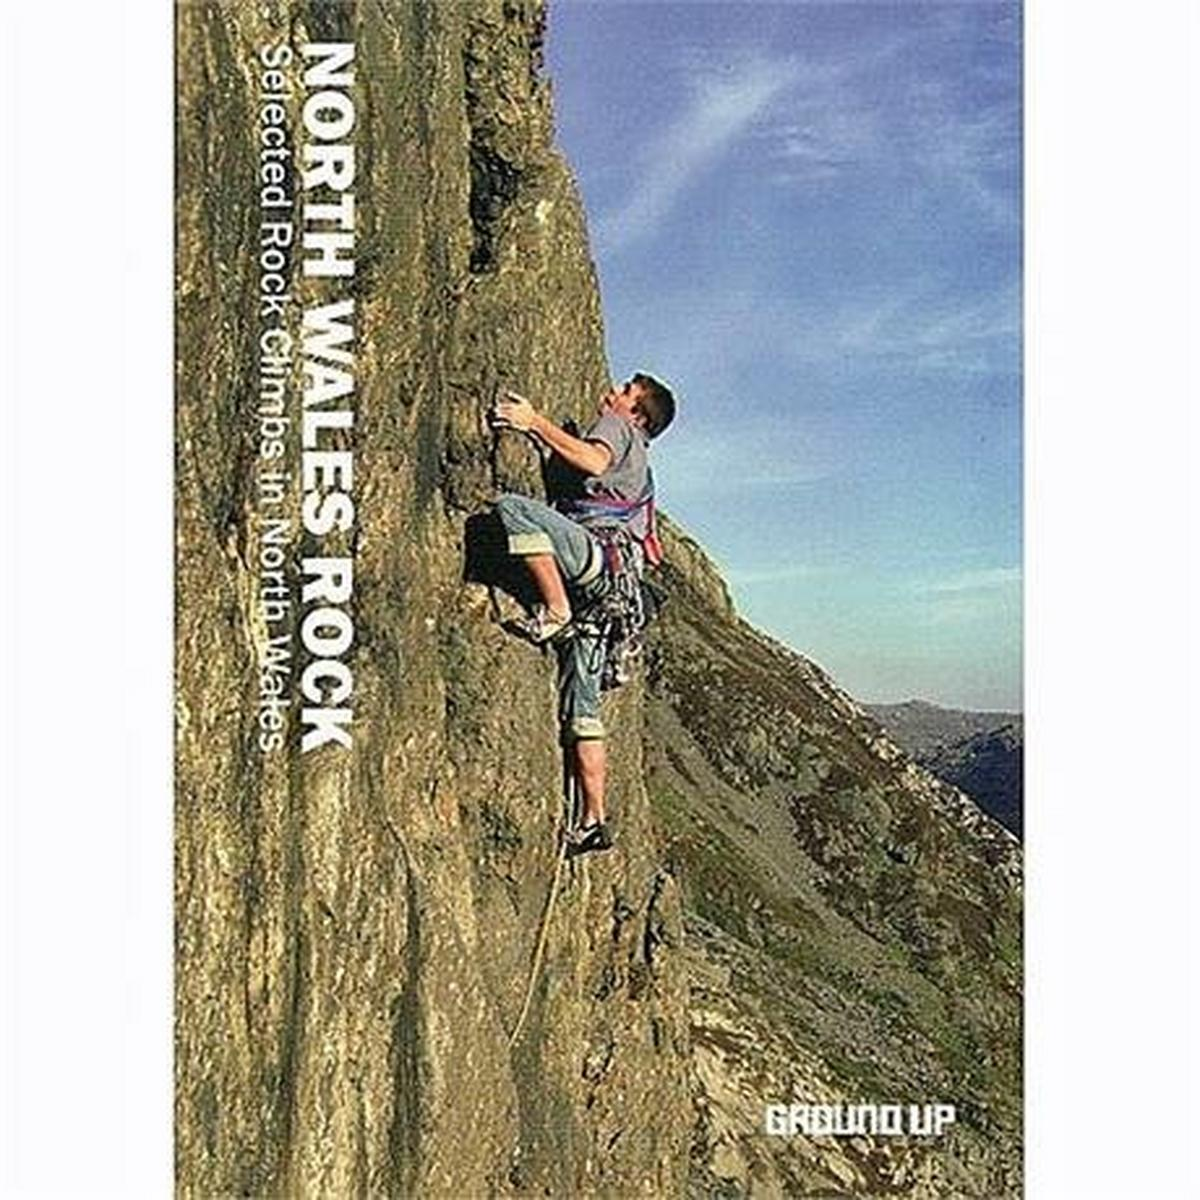 Miscellaneous Climbing Guide Book: North Wales Rock